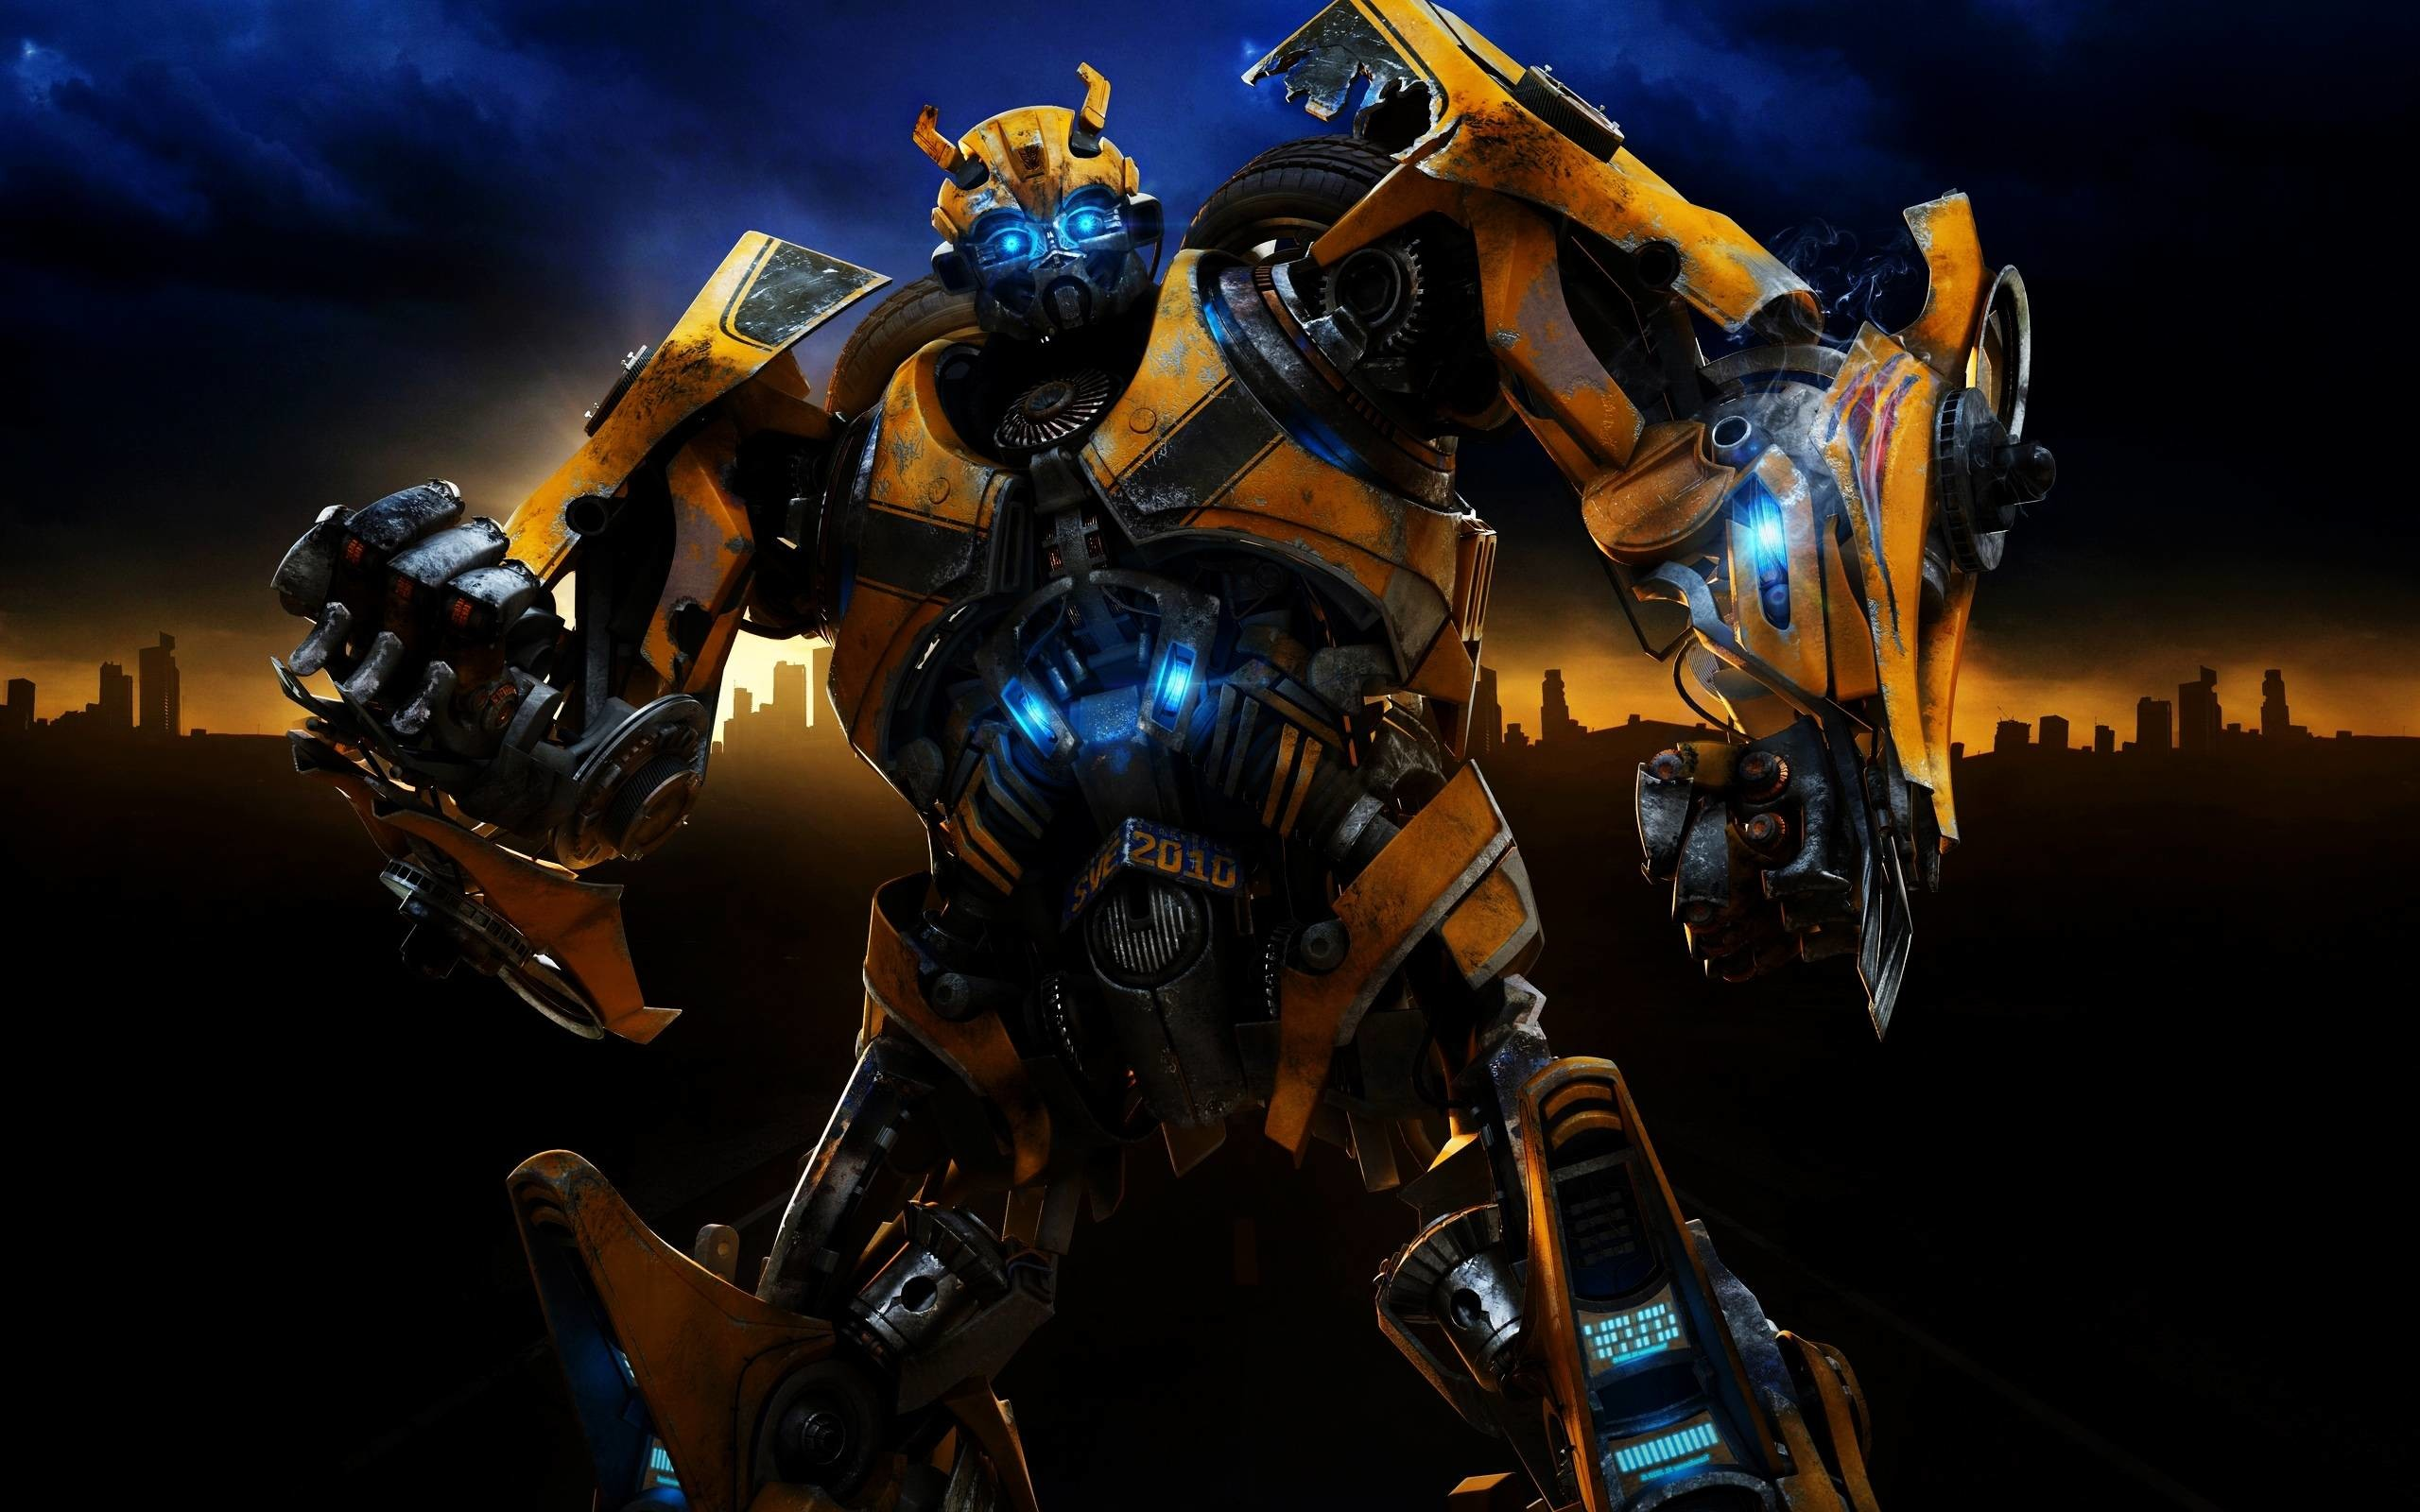 2560x1600 Autobot Wallpapers - Full HD wallpaper search